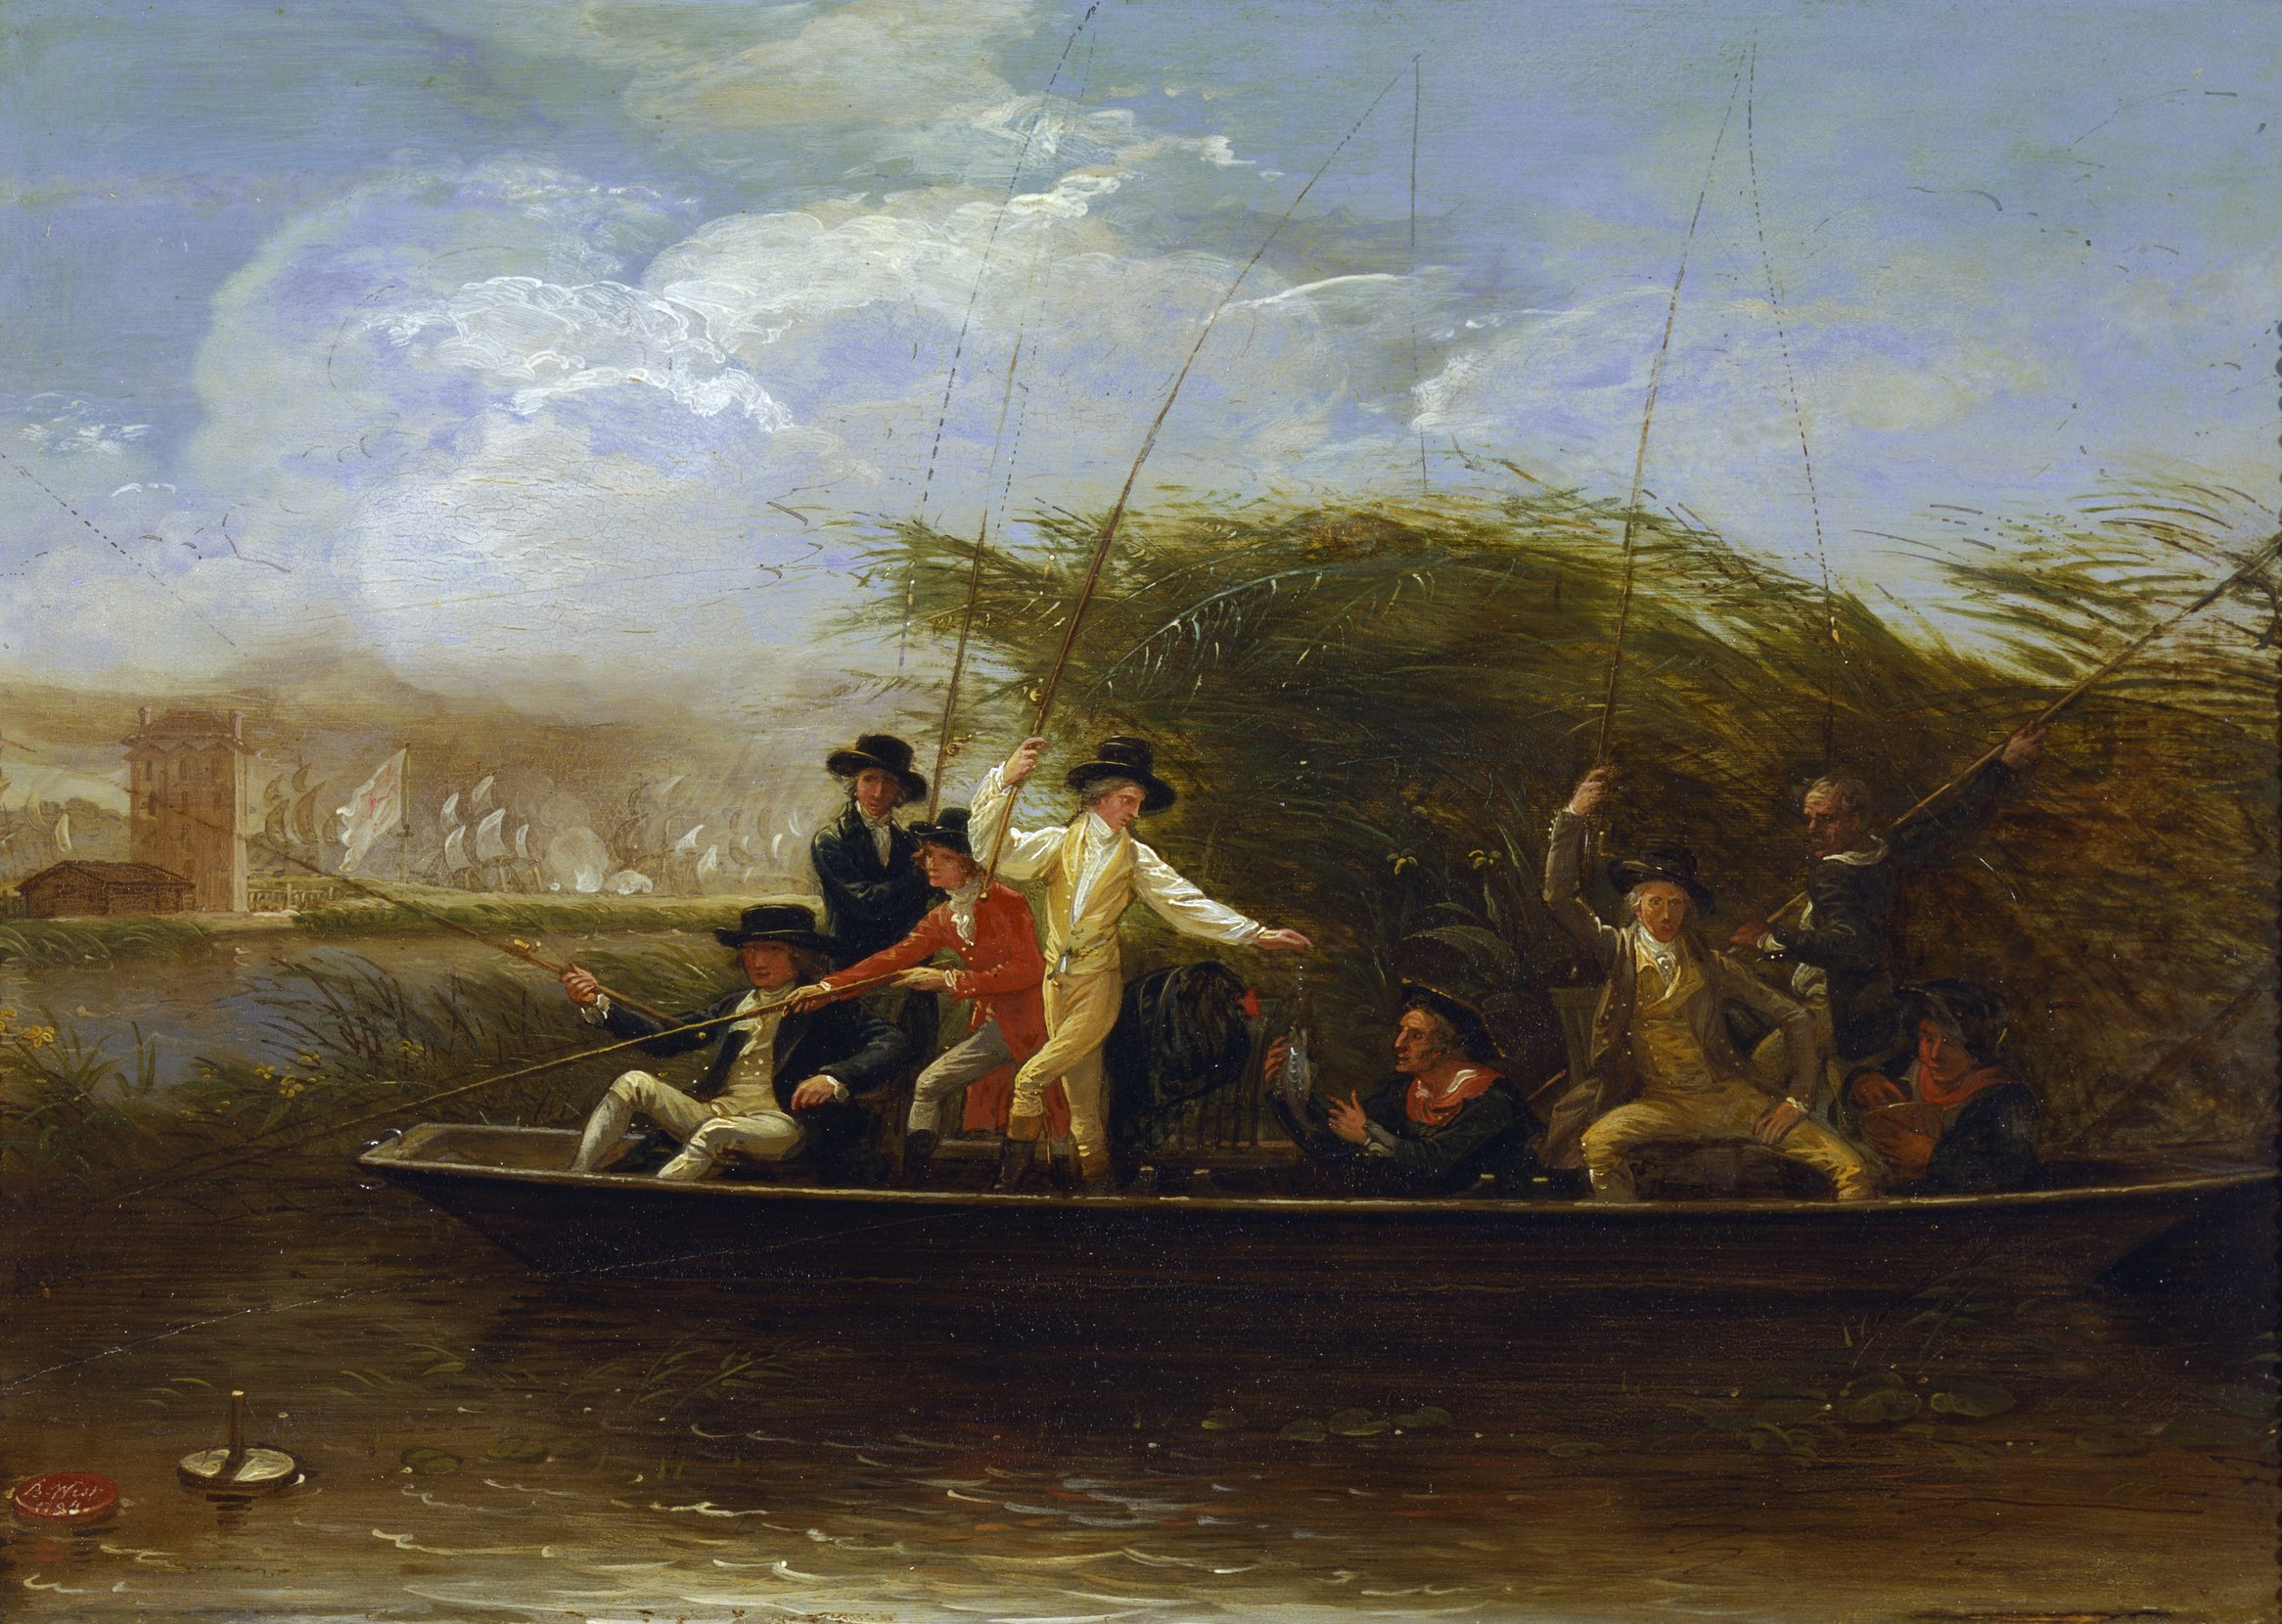 Omaž ribolovcu i ribolovu - Page 4 Siftingthepast-ycba_a-party-of-gentlemen-fishing-from-a-punt_benjamin-west1738-1820